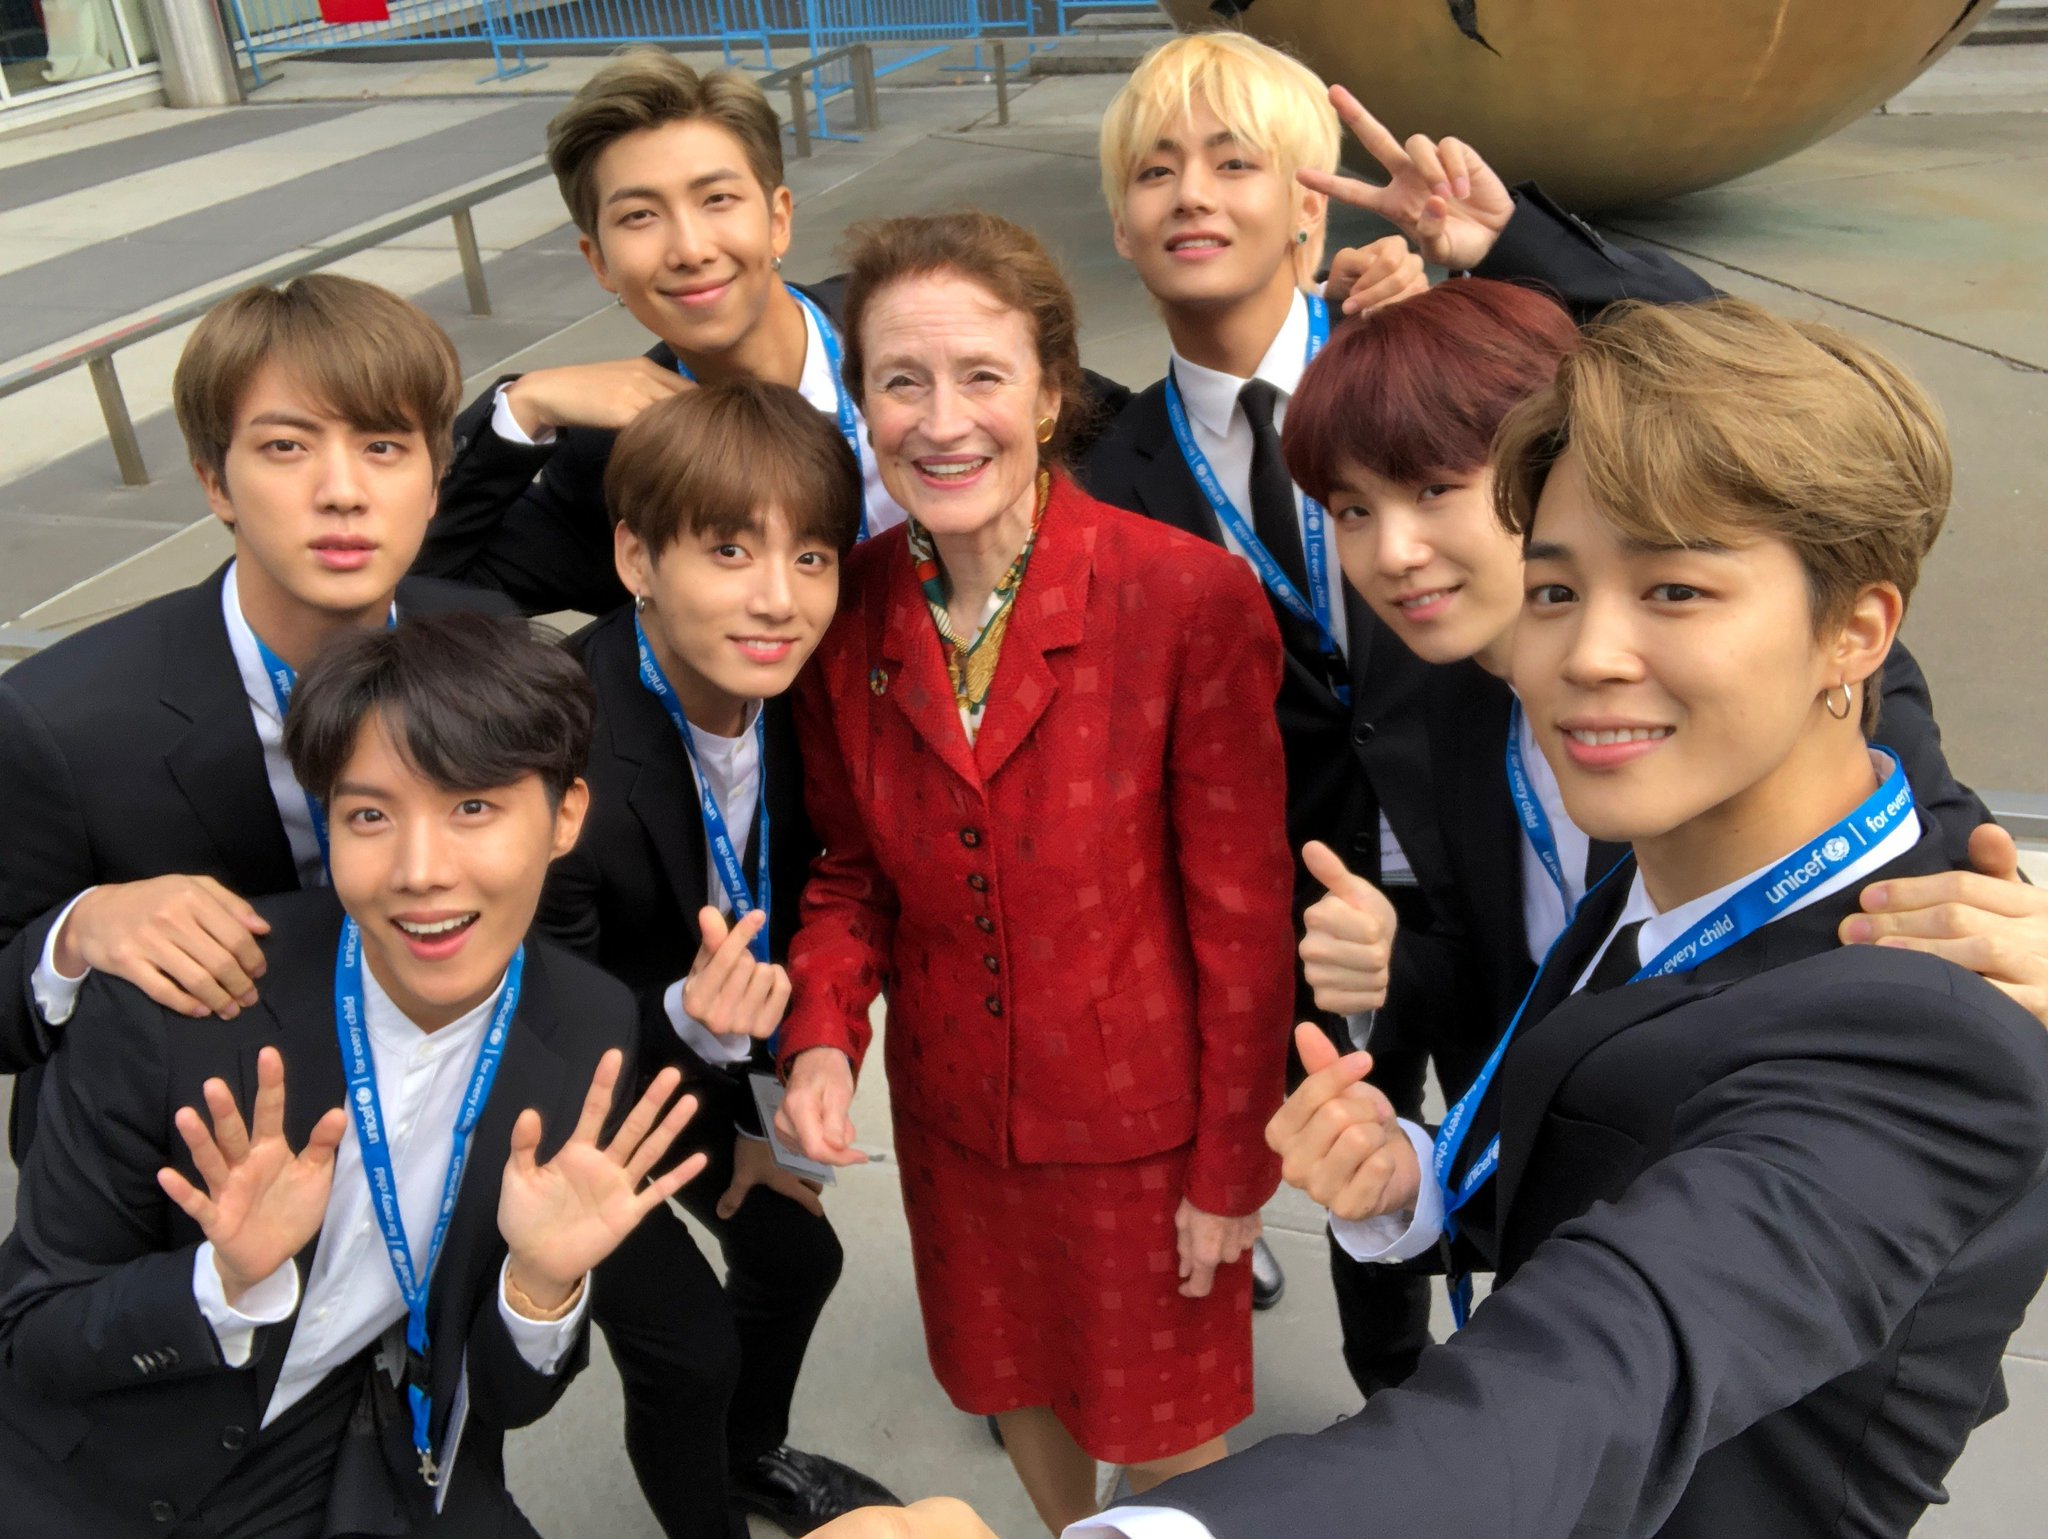 Selfie at #UNGA with @BTS_TWT -  incredible advocates for young people around the world. #GenUnlimited #Youth2030 https://t.co/ZTPDSSHOZt